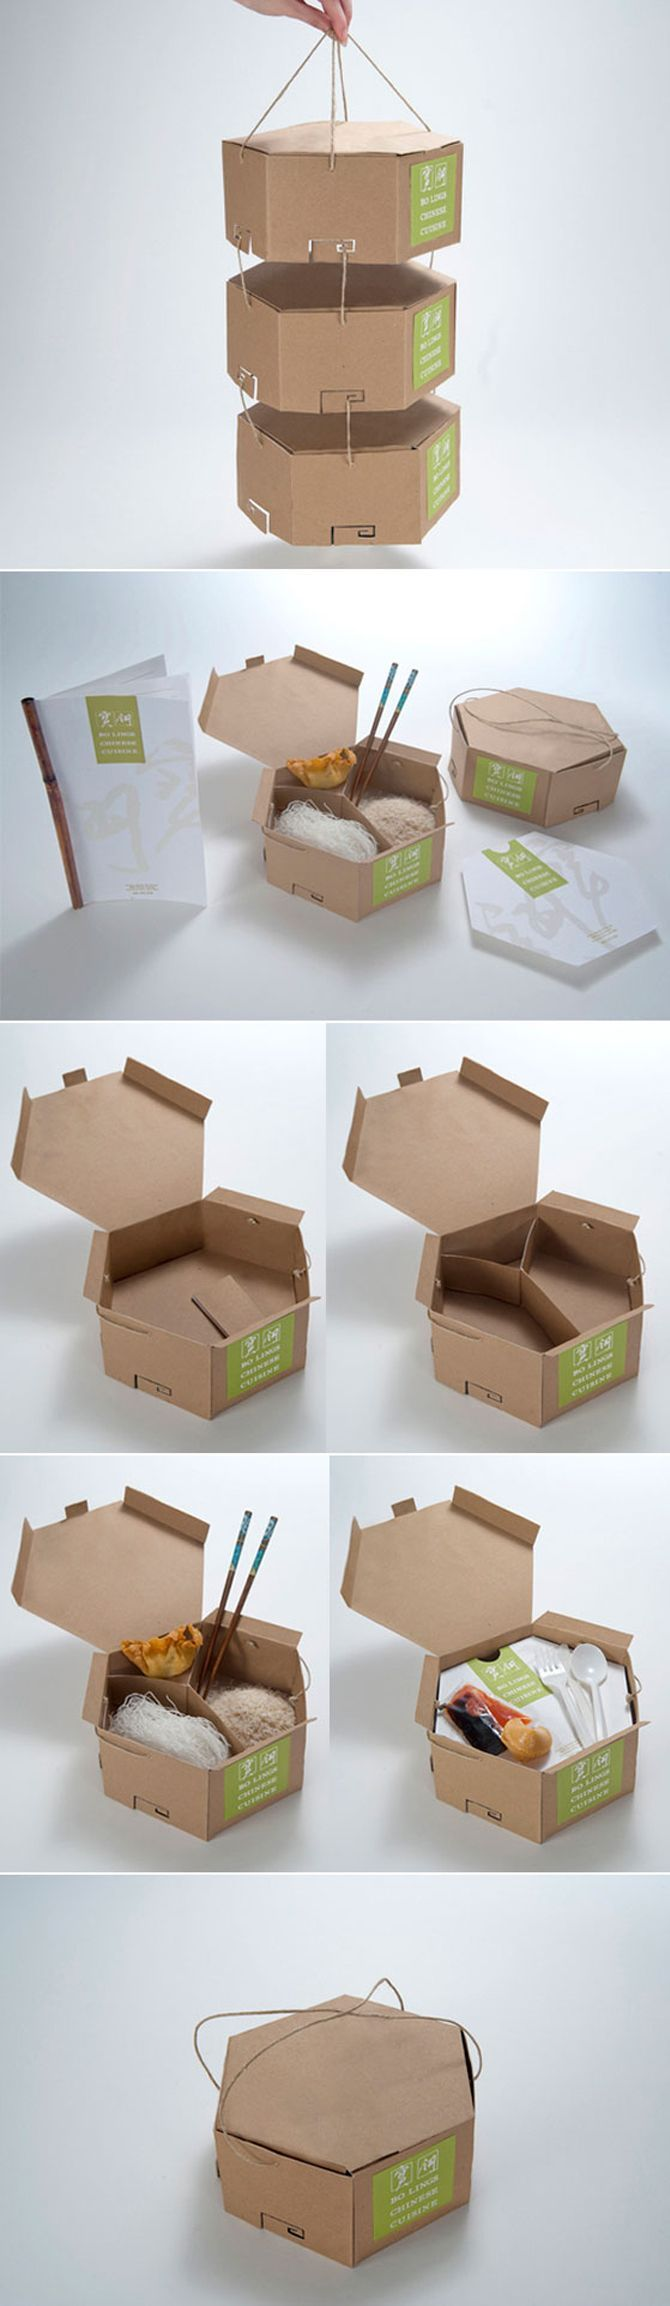 another great take-away #packaging #design and this one is #eco-friendly PD